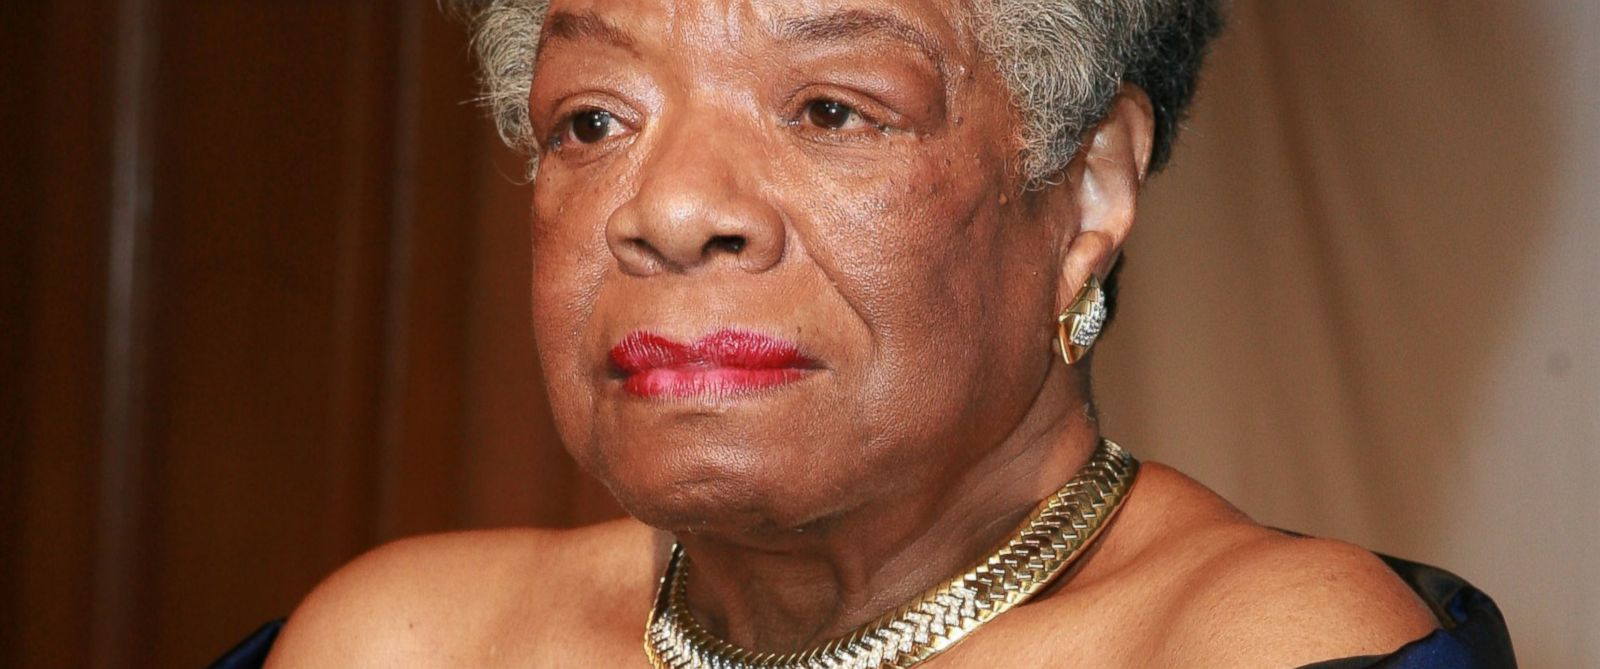 maya angelous autobiography Maya angelou was a famous writer, activist, singer, and actor, known best for her autobiography, 'i know why the caged bird sings' read on for detailed information.